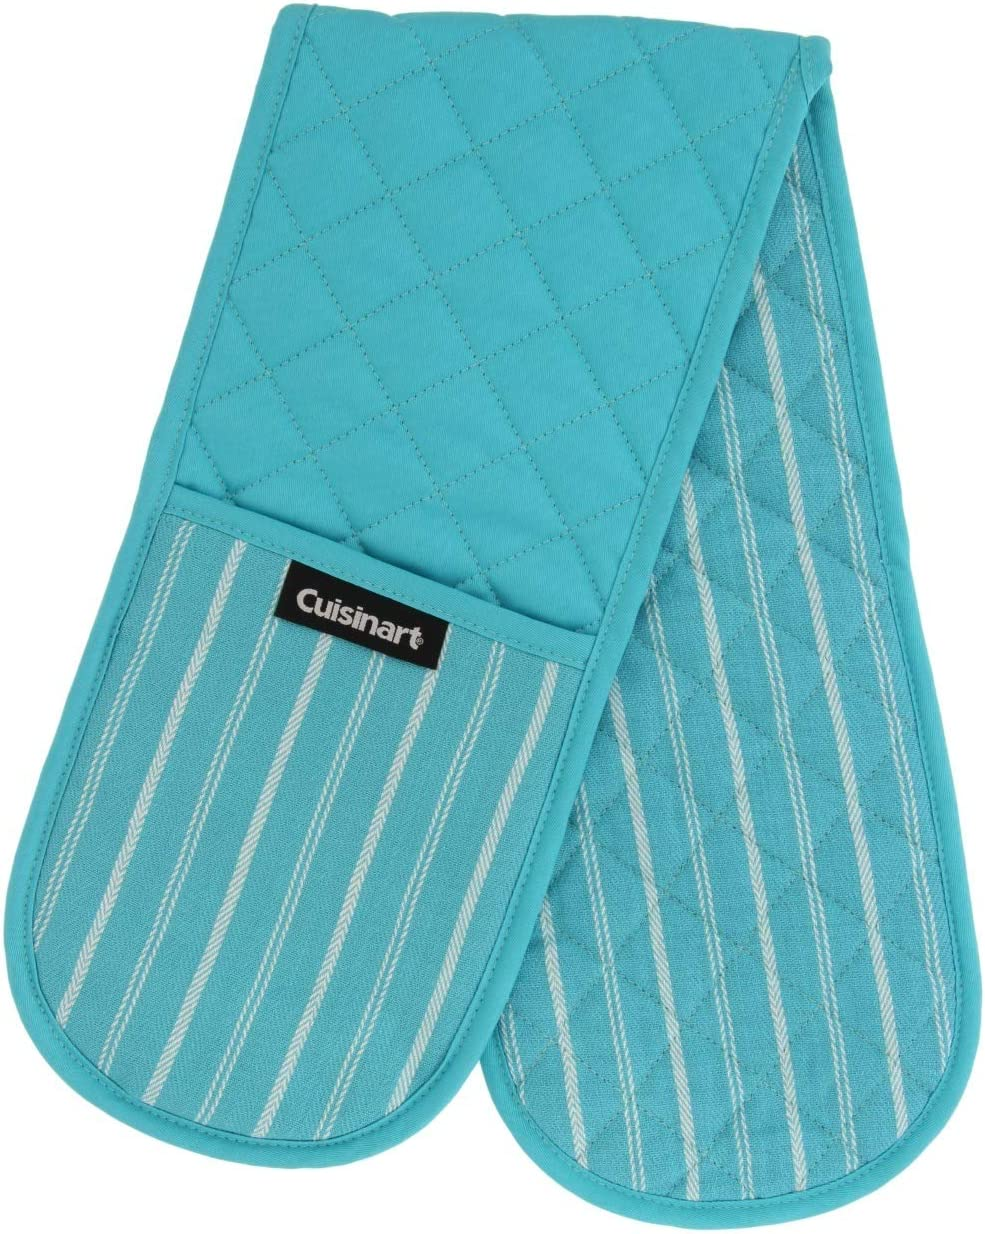 Cuisinart Quilted Double Oven Mitt, Twill Stripe, 7.5 x 35 inches - Heat Resistant Oven Gloves to Protect Hands and Arms - Great Set for Cooking, Baking, and Handling Hot Pots and Pans- Blue Curacao